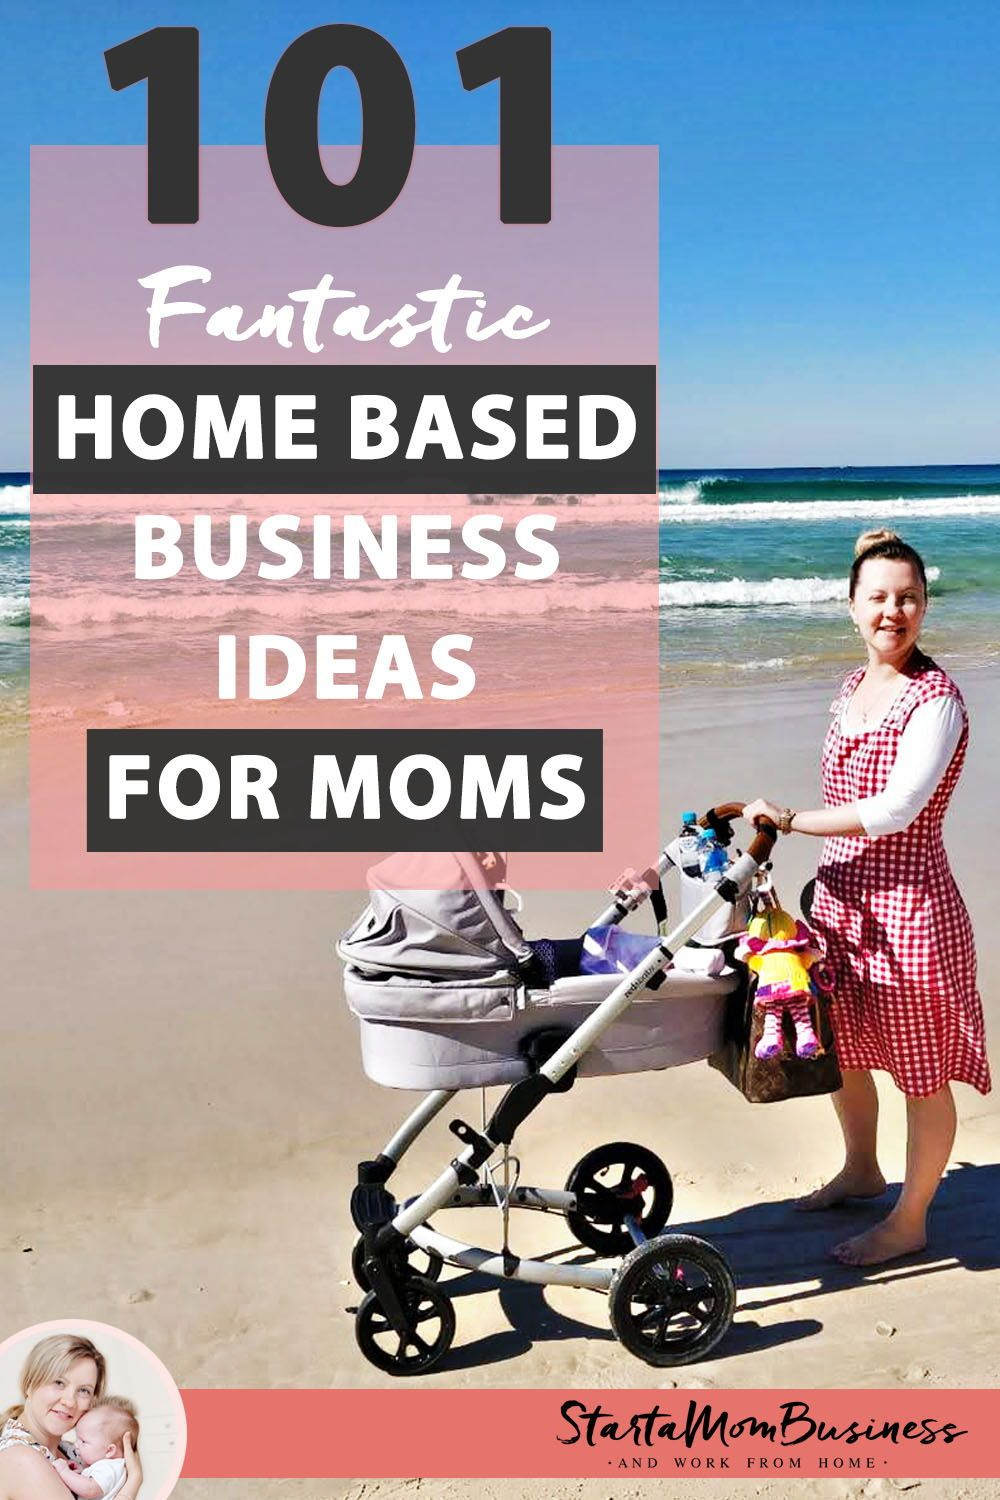 101 Fantastic Home Based Business Ideas for Moms (With